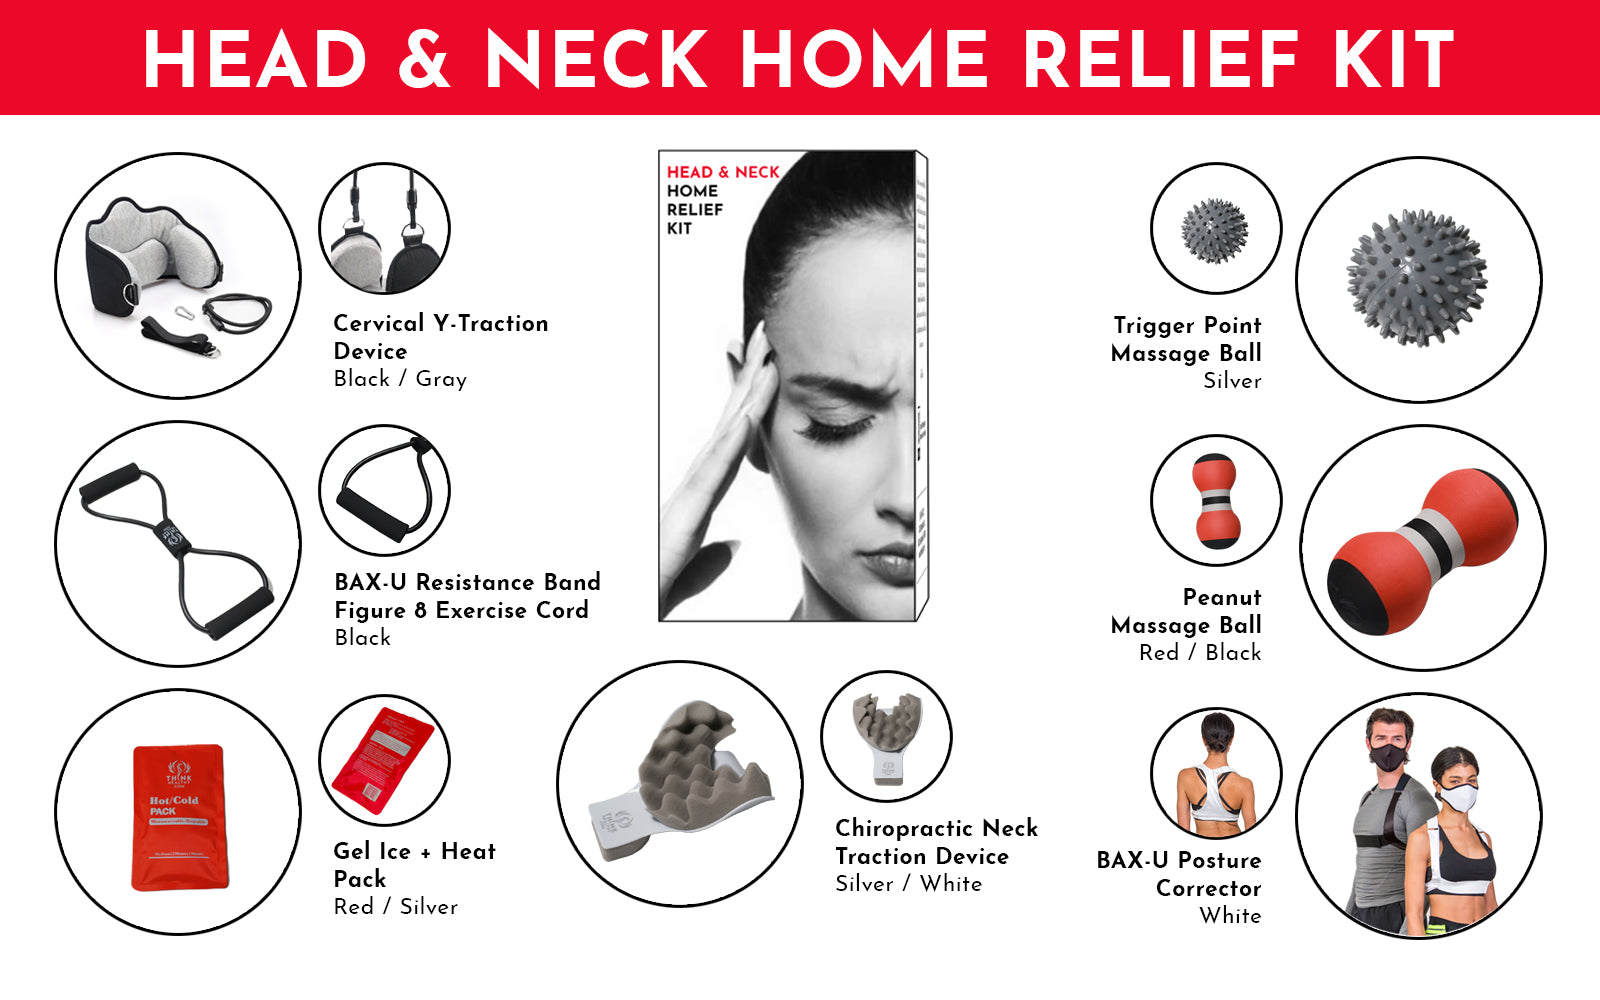 Head & Neck Home Relief Kit